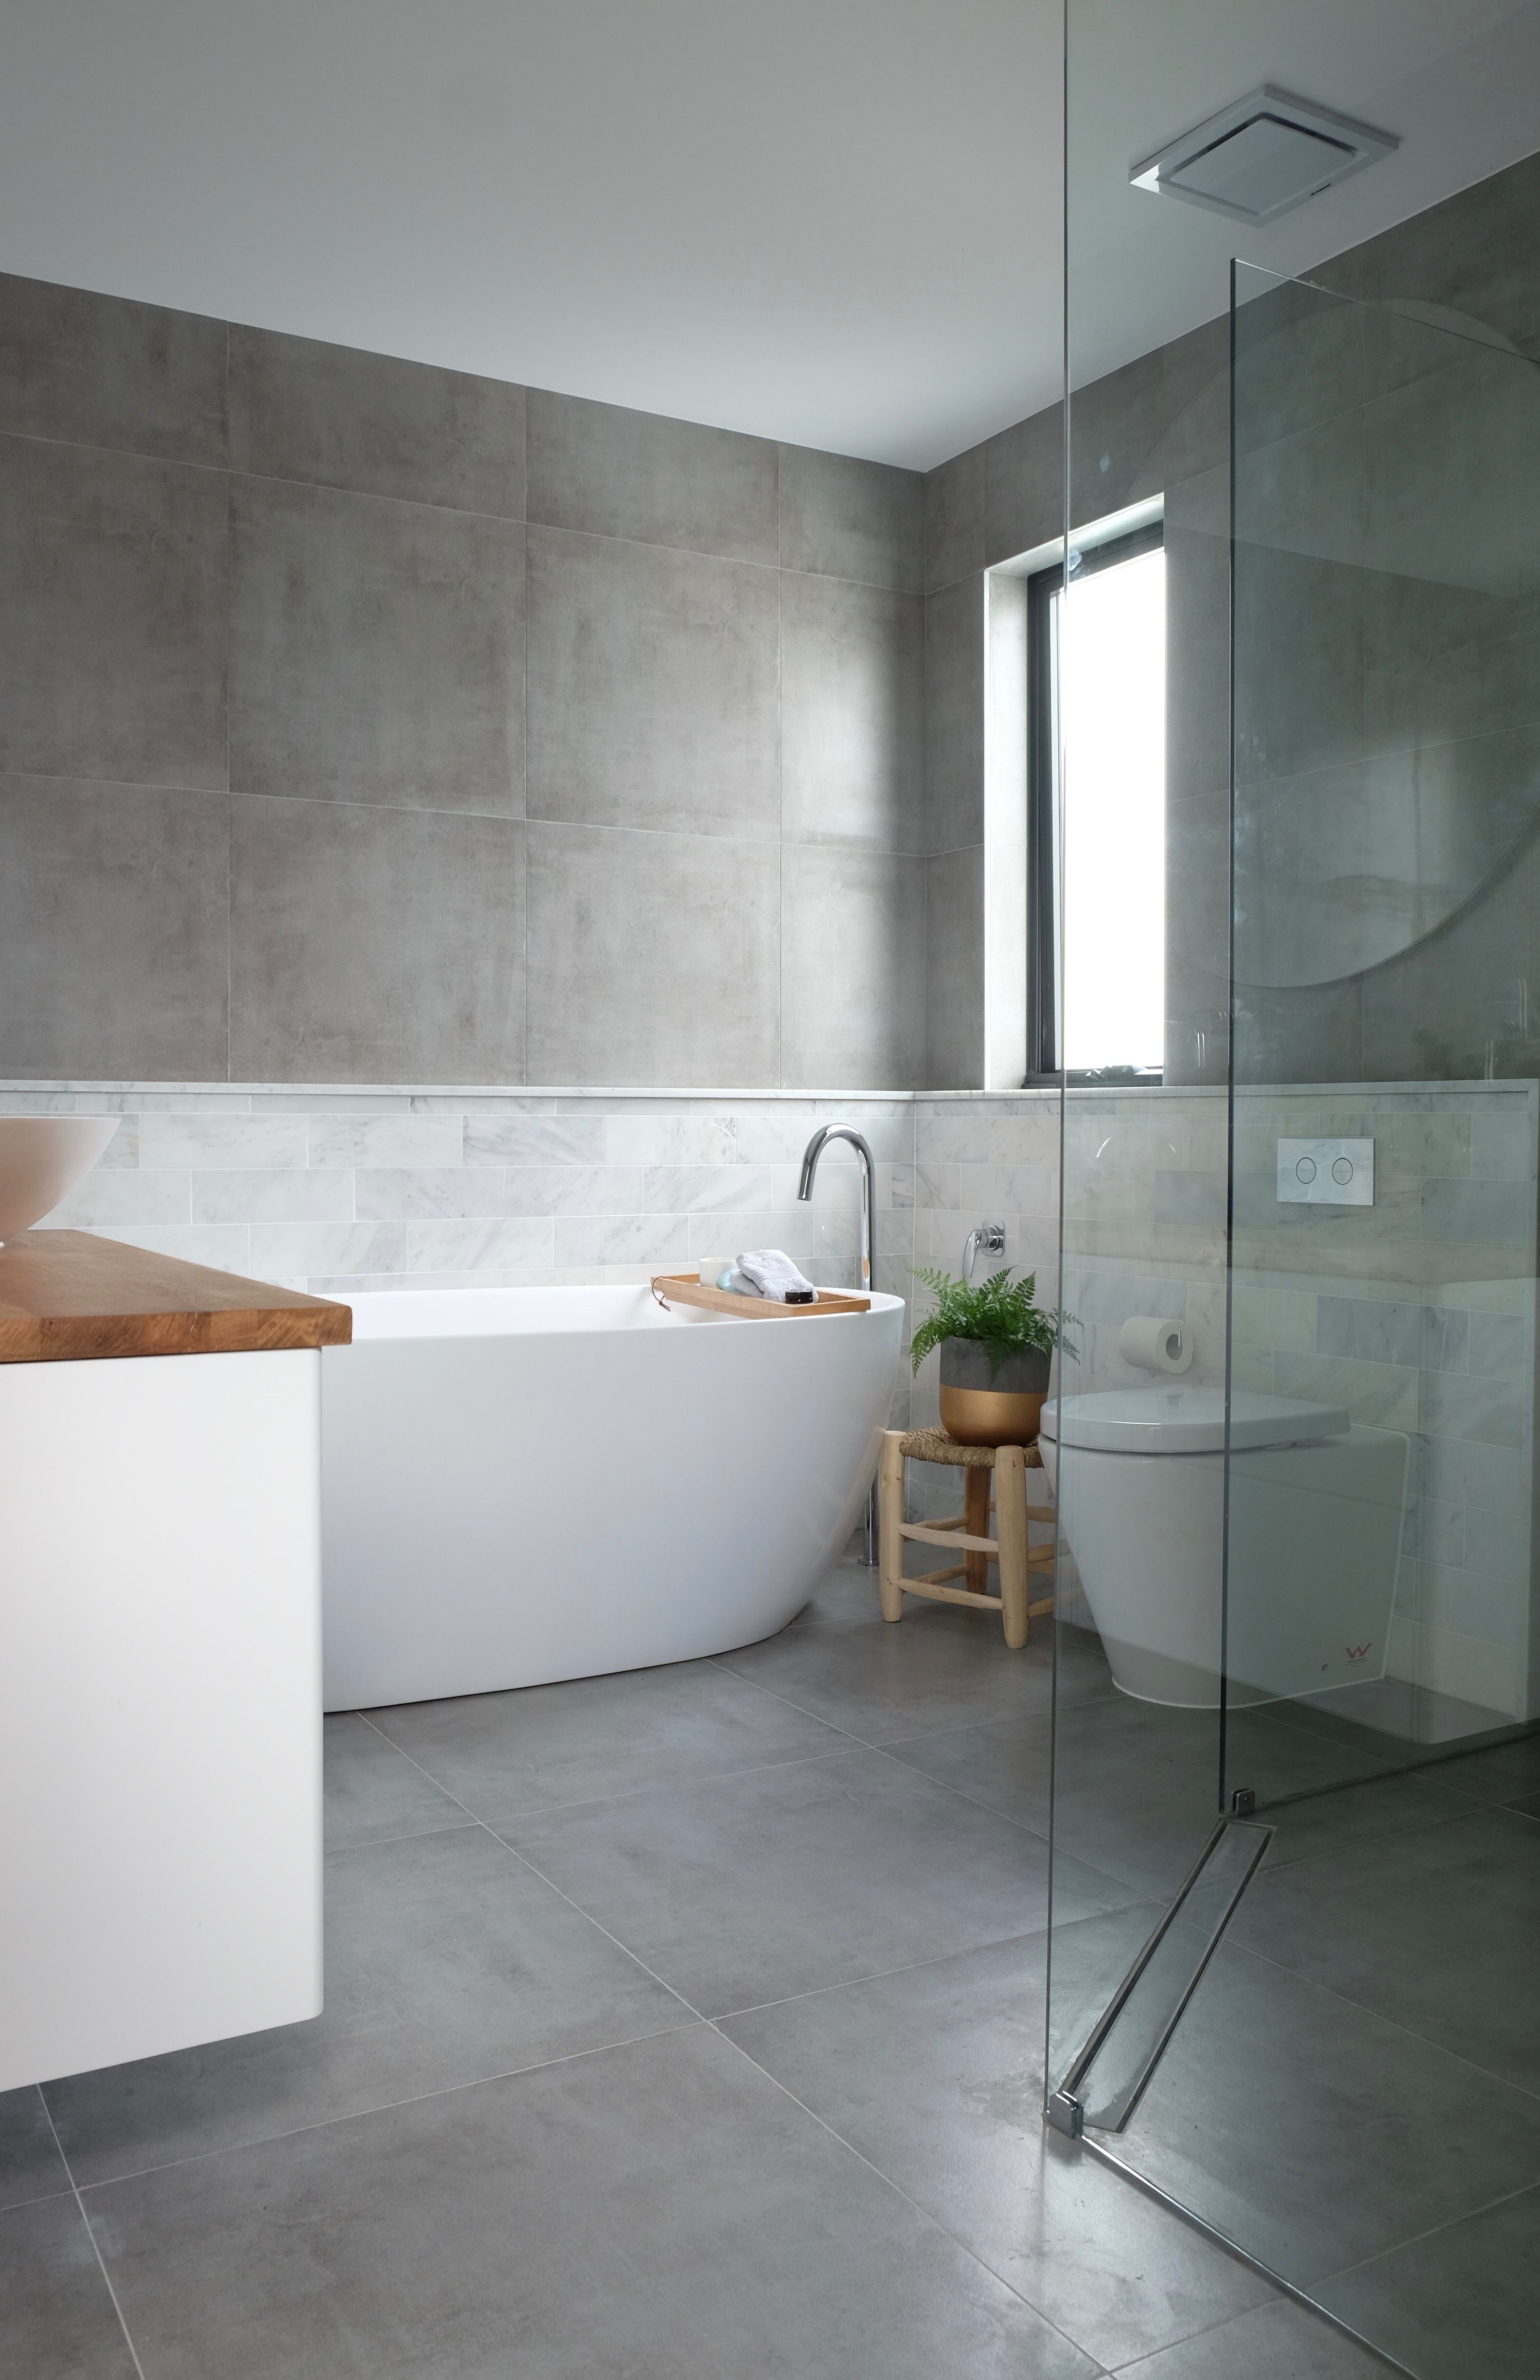 Pin By Pamela Wright On Hawaii Master Bath In 2019